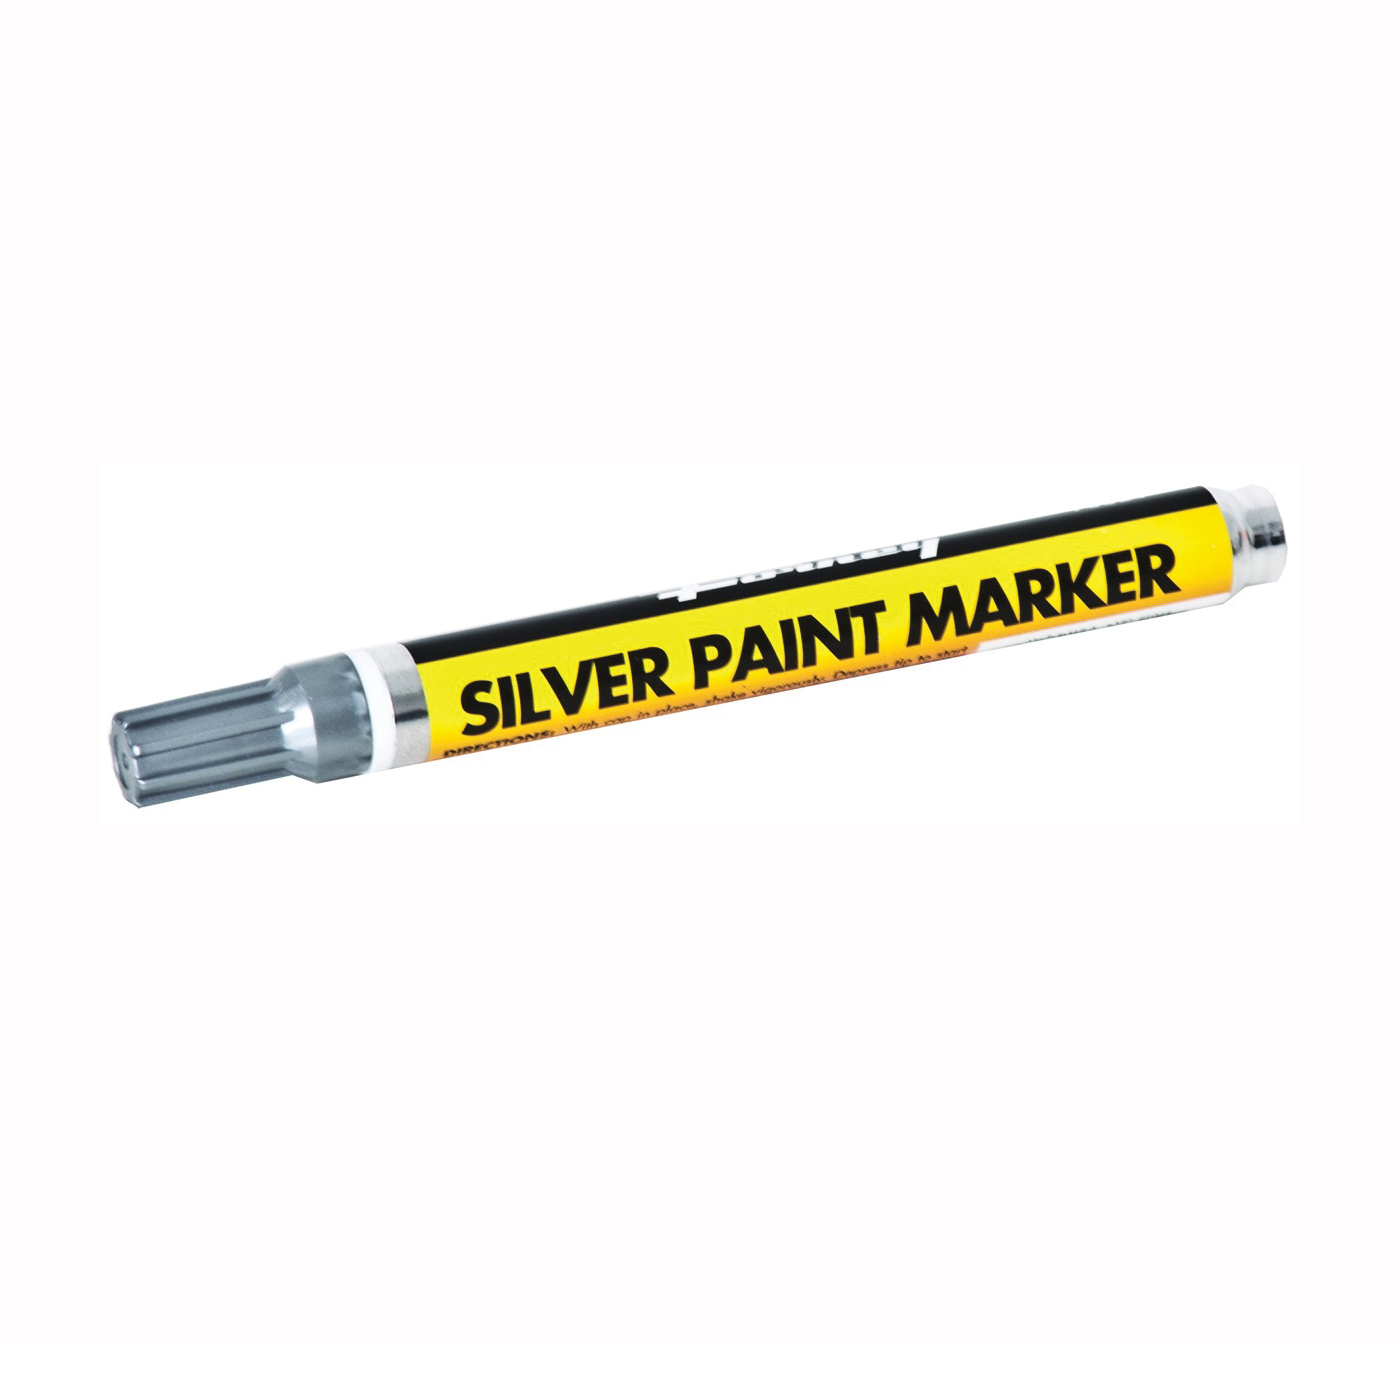 Picture of Forney 70824 Paint Marker, Silver